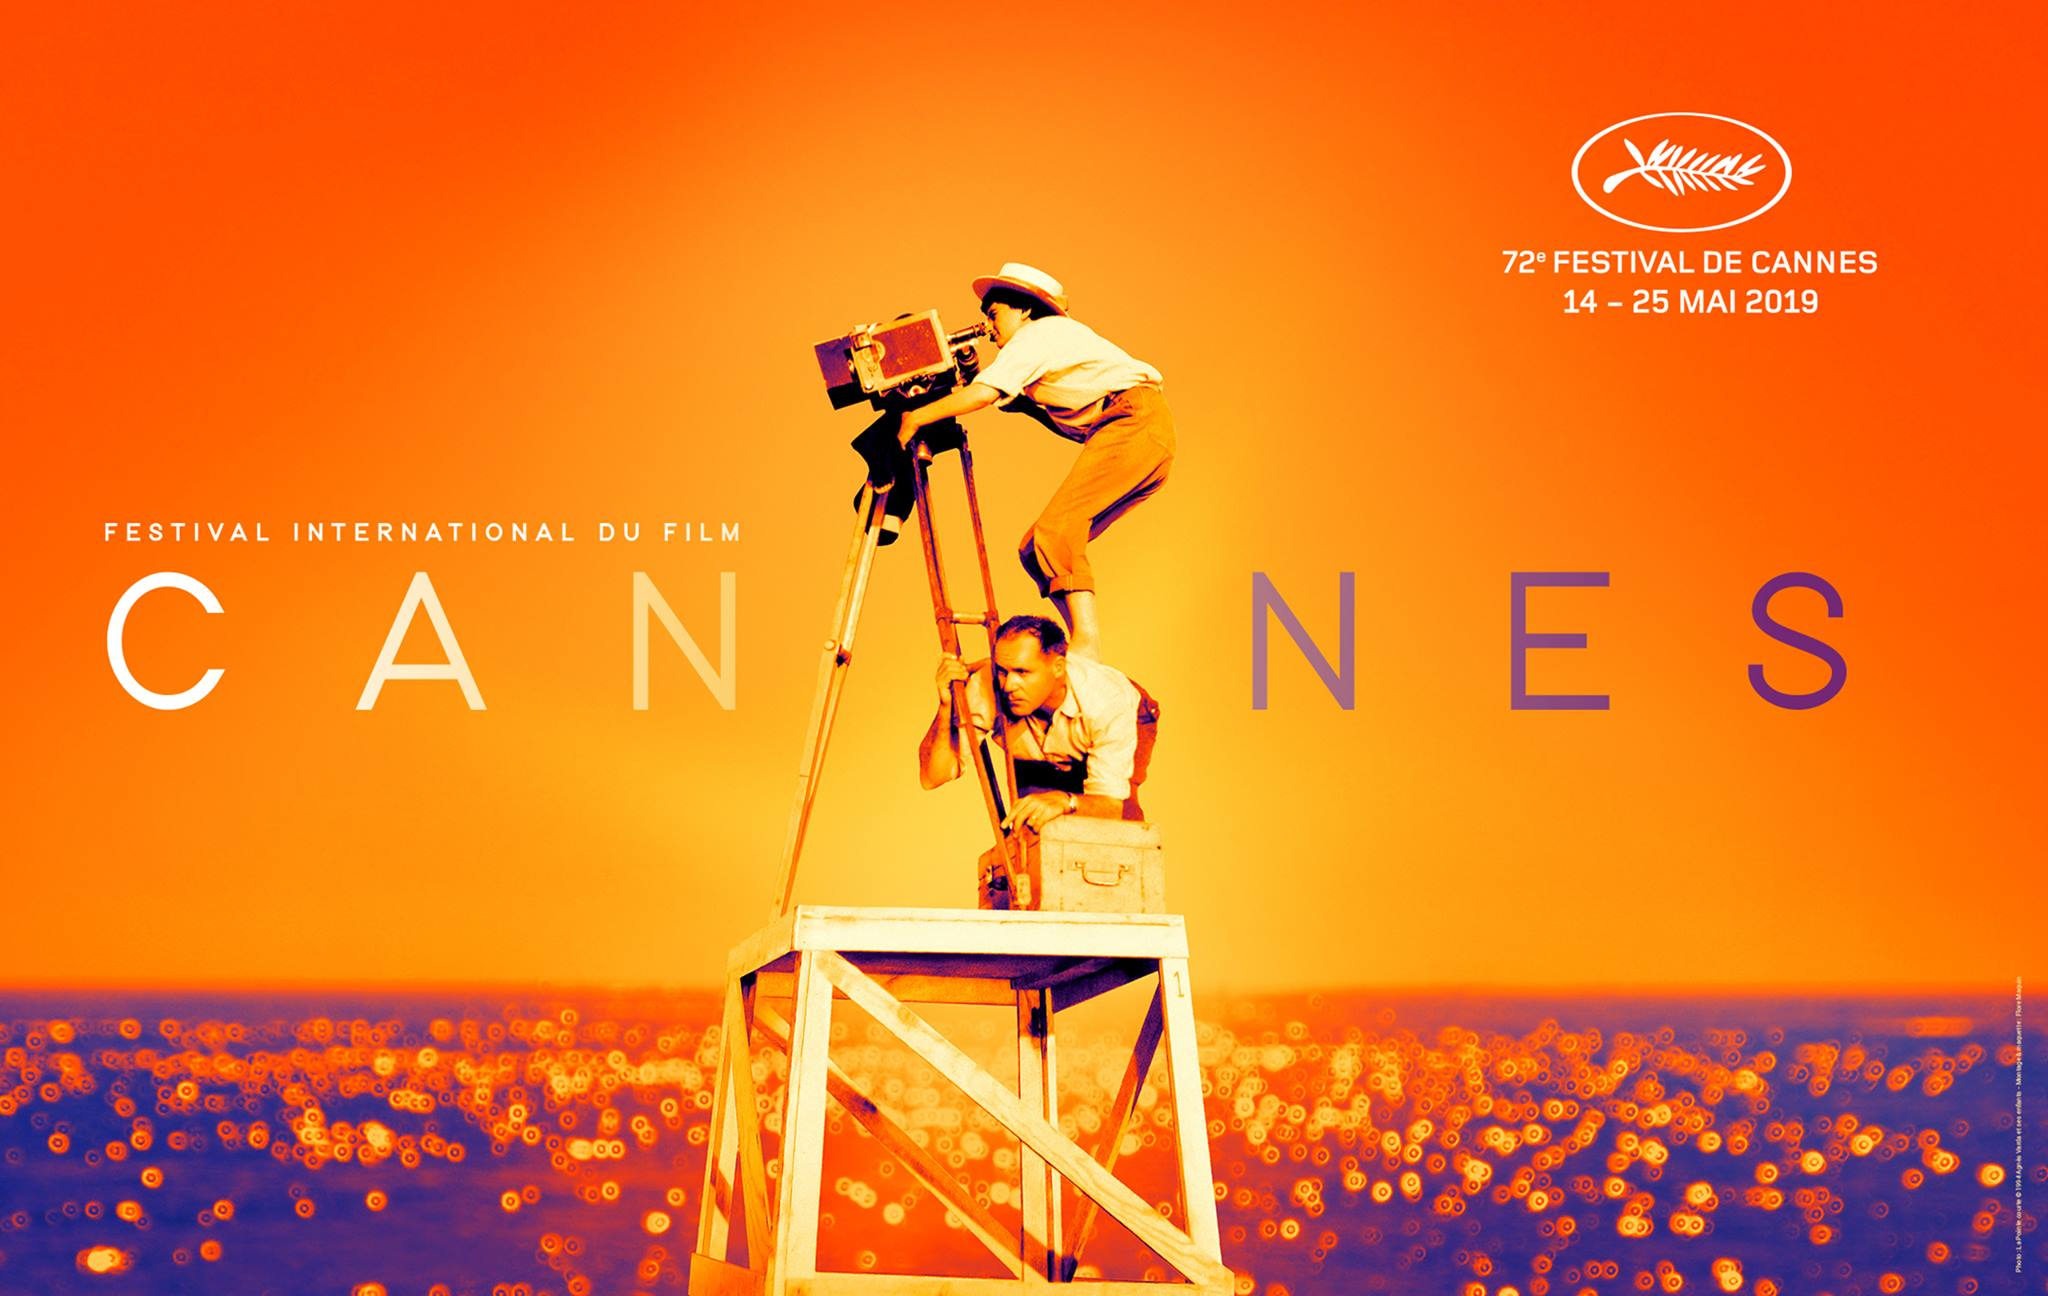 Cannes-Banner02.png